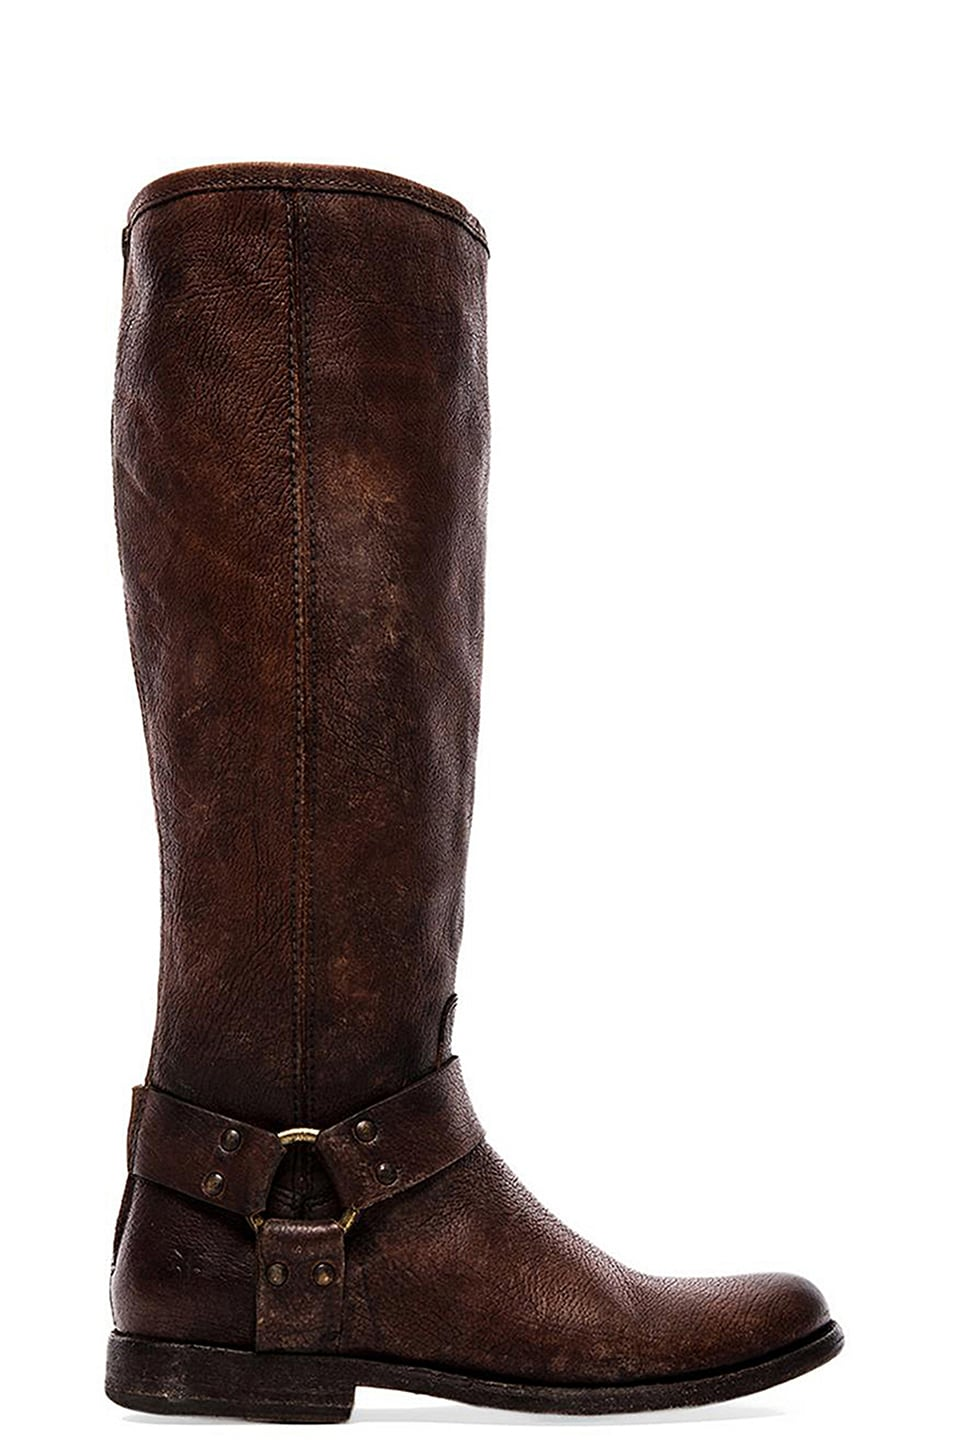 Frye Phillip Harness Tall in Cognac